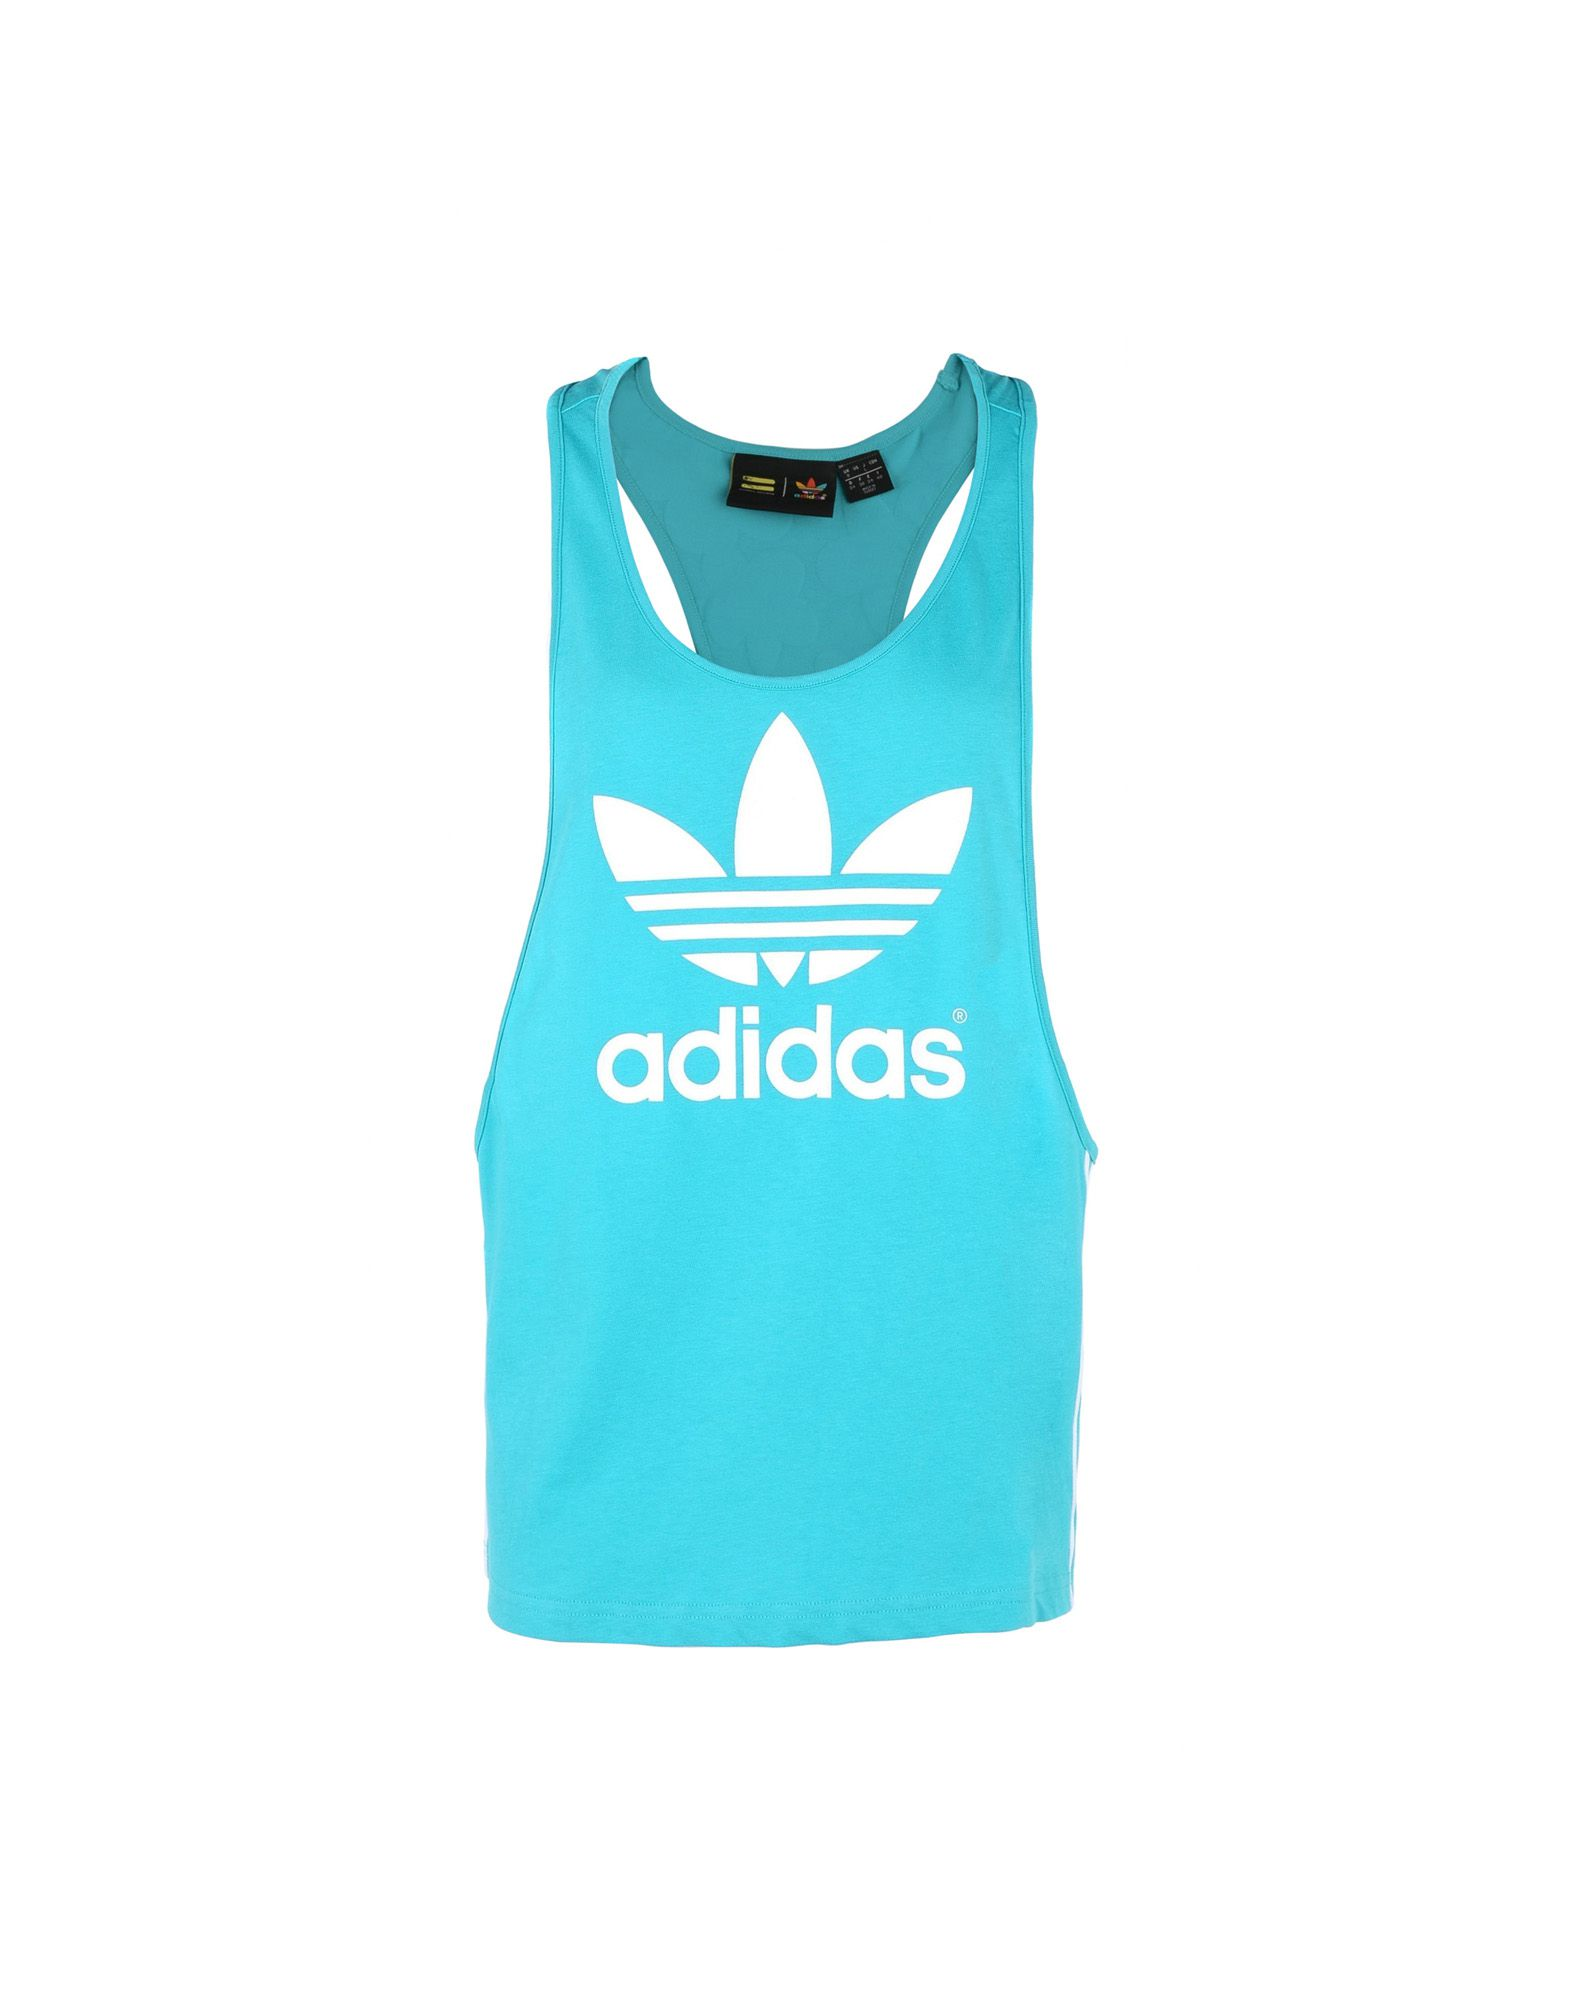 ADIDAS ORIGINALS by PHARRELL WILLIAMS Топ без рукавов платье adidas originals adidas originals ad093ewqio37